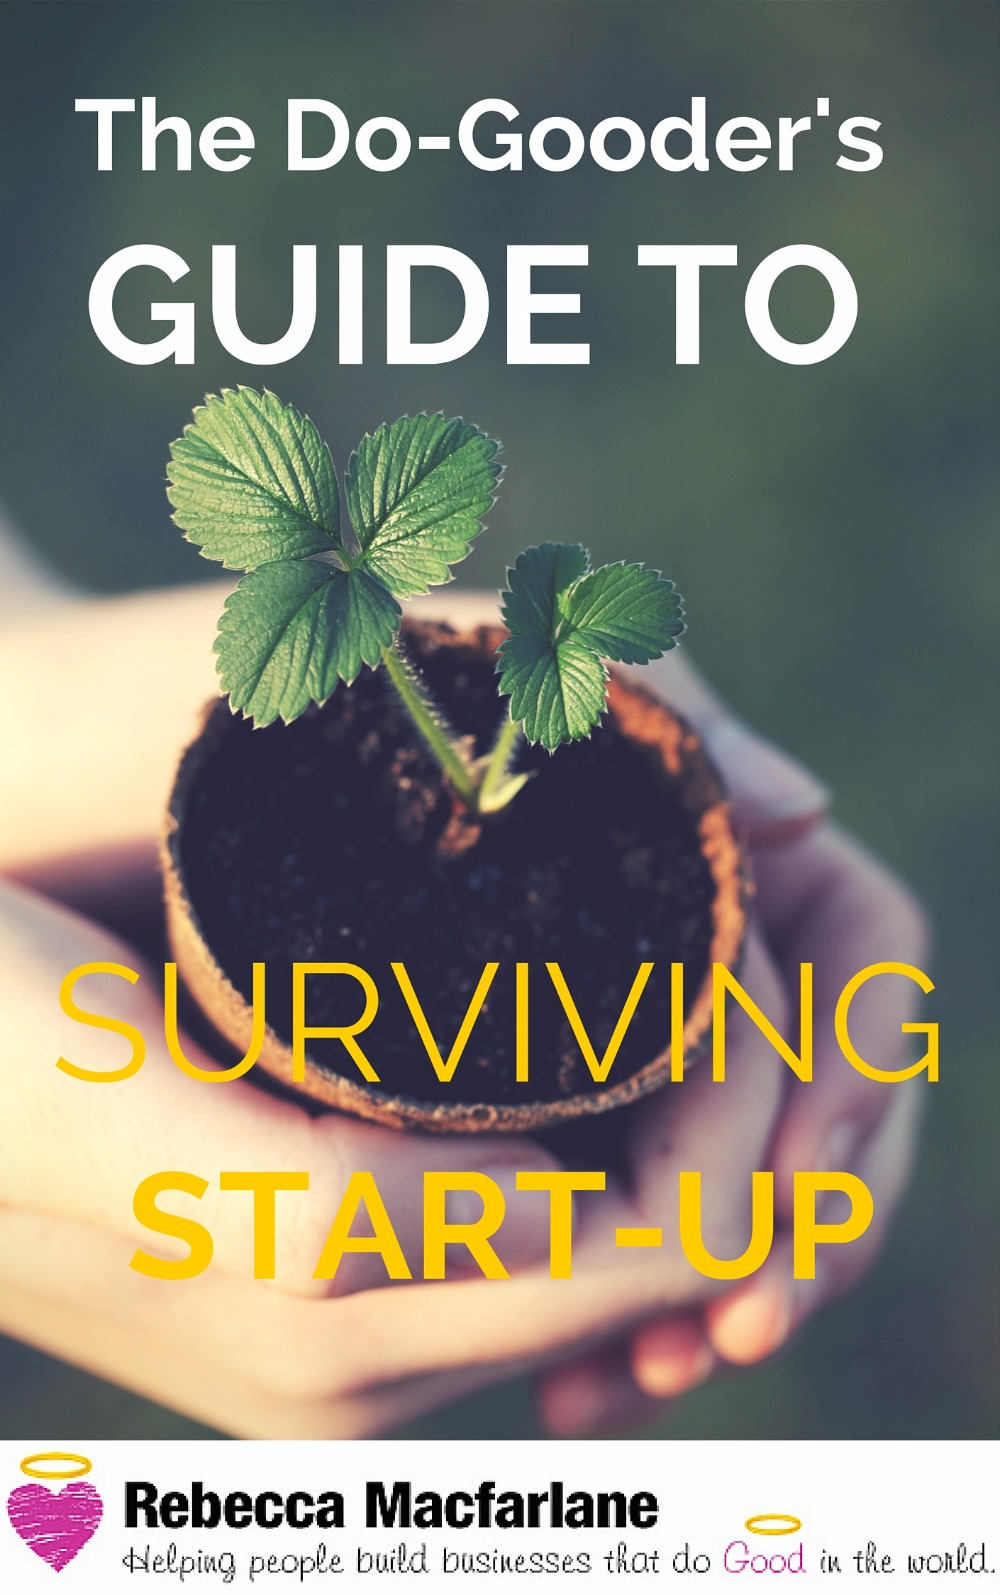 The Do-Gooder's Guide to Surviving Start Up